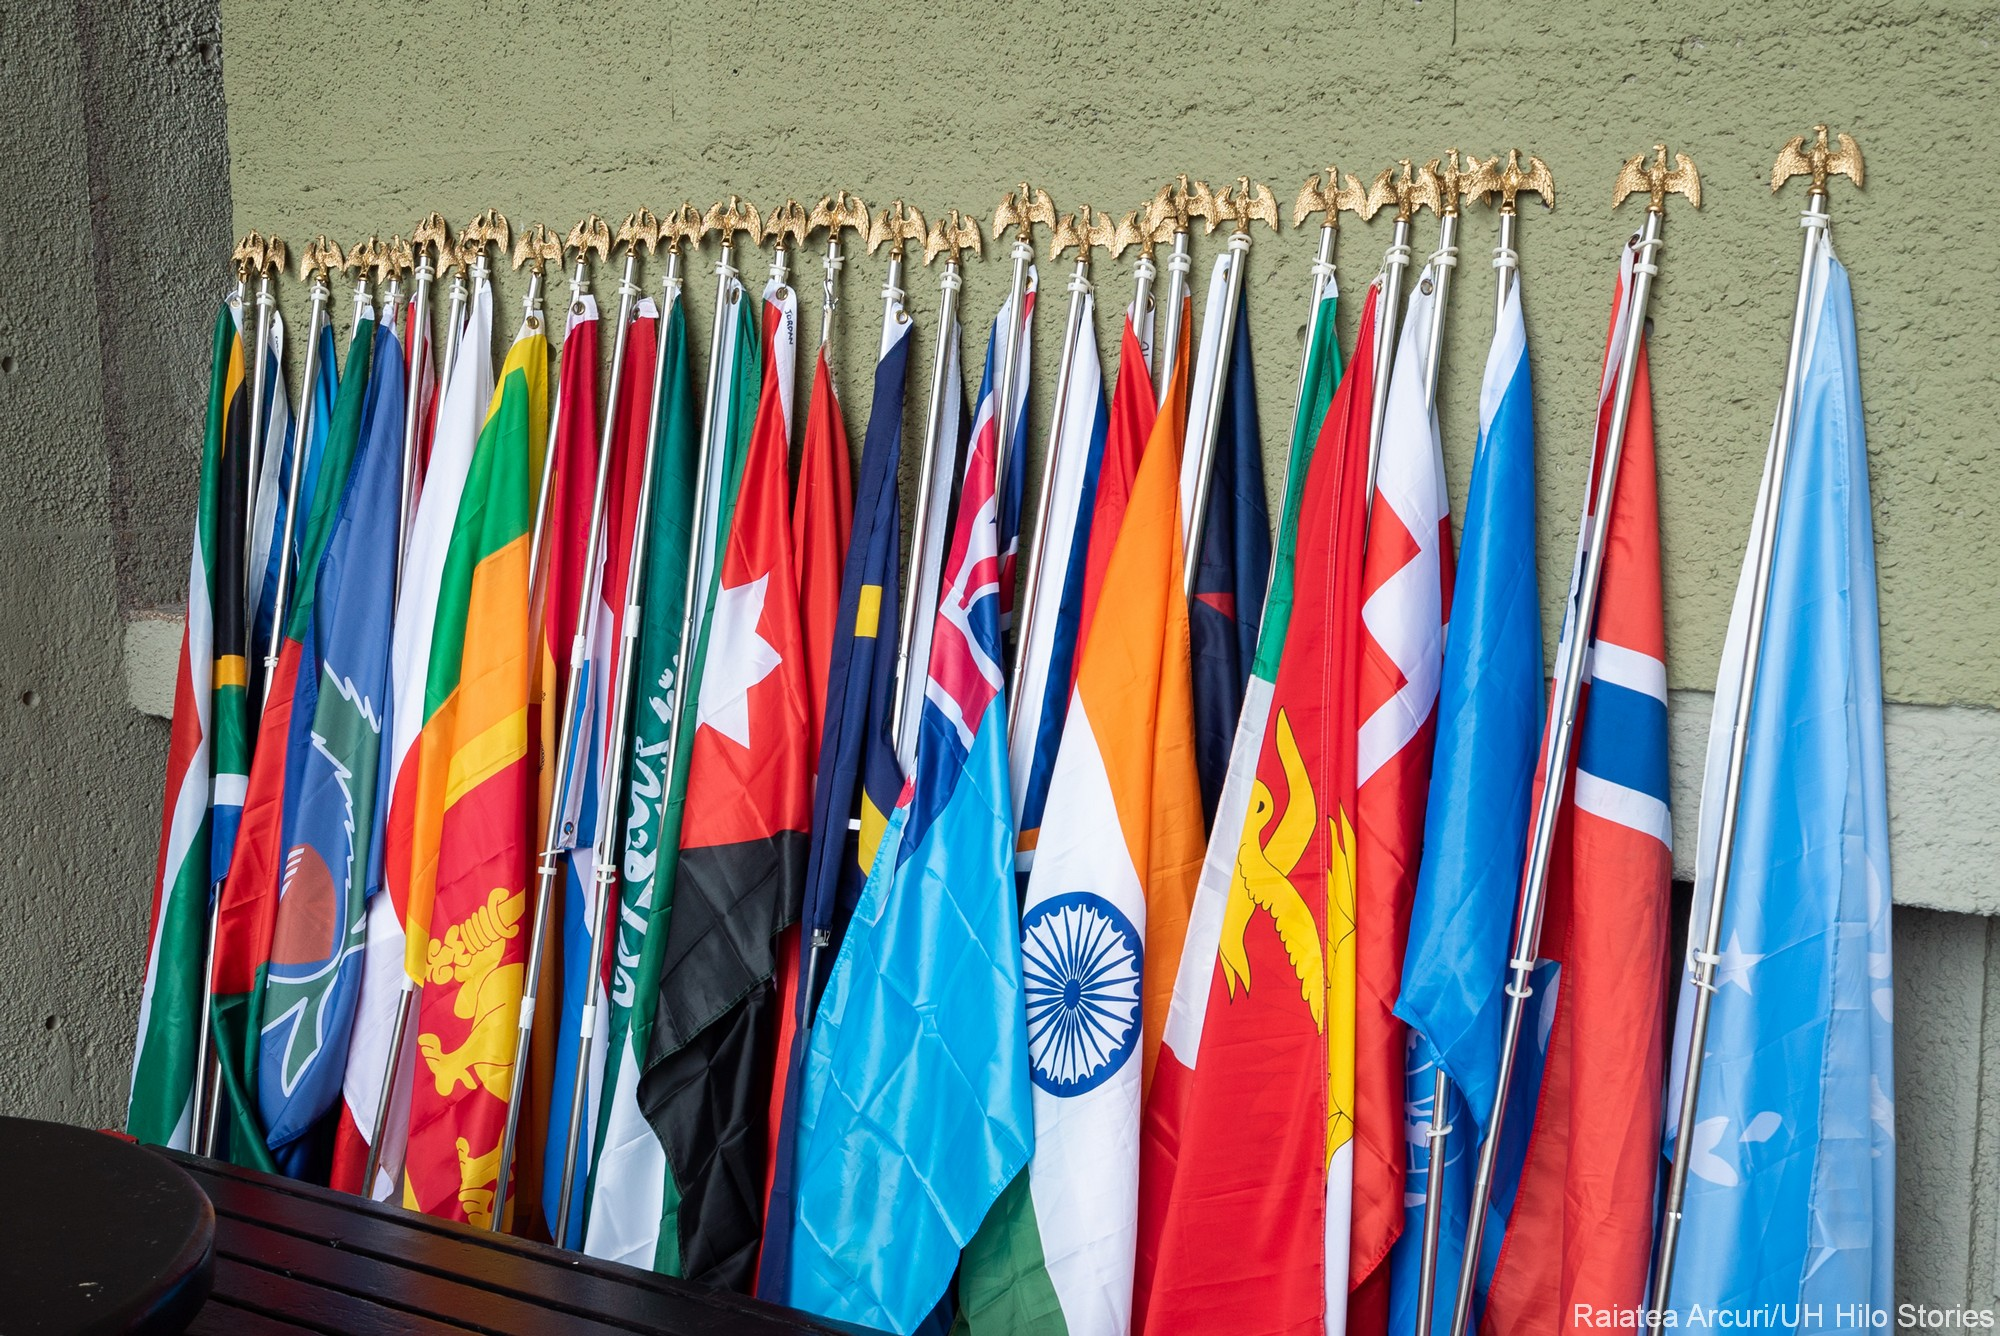 Line up of flags from all the different countries represented.